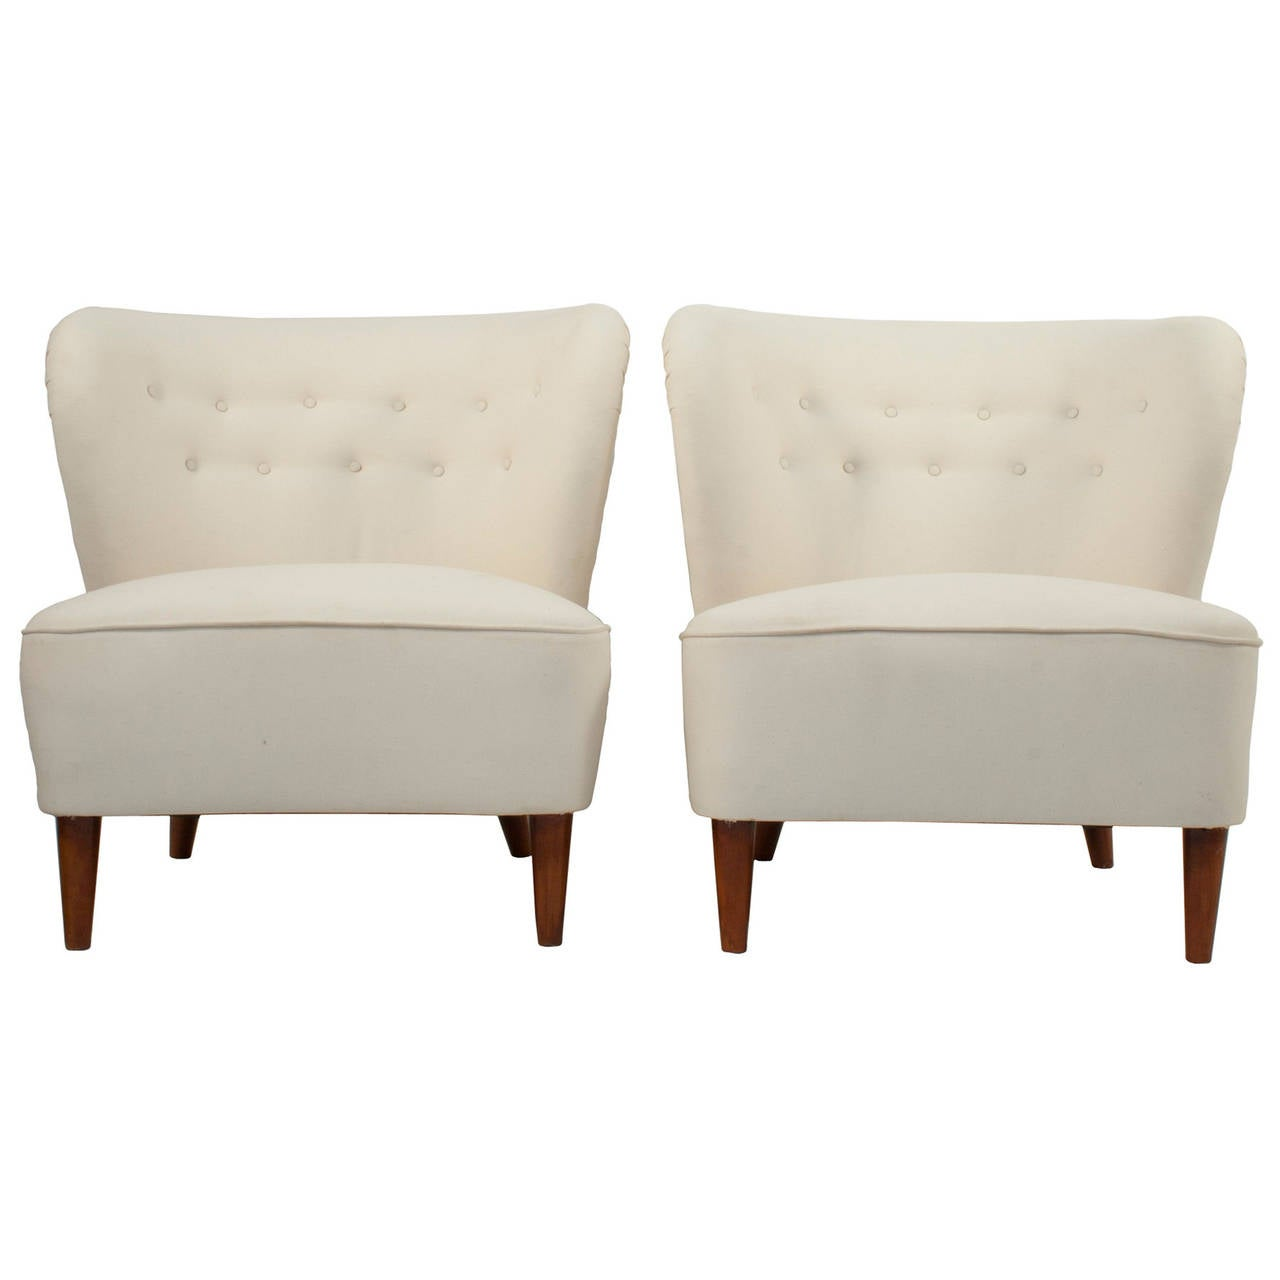 pair of club chairs by gösta jonsson for sale at stdibs - pair of club chairs by gösta jonsson